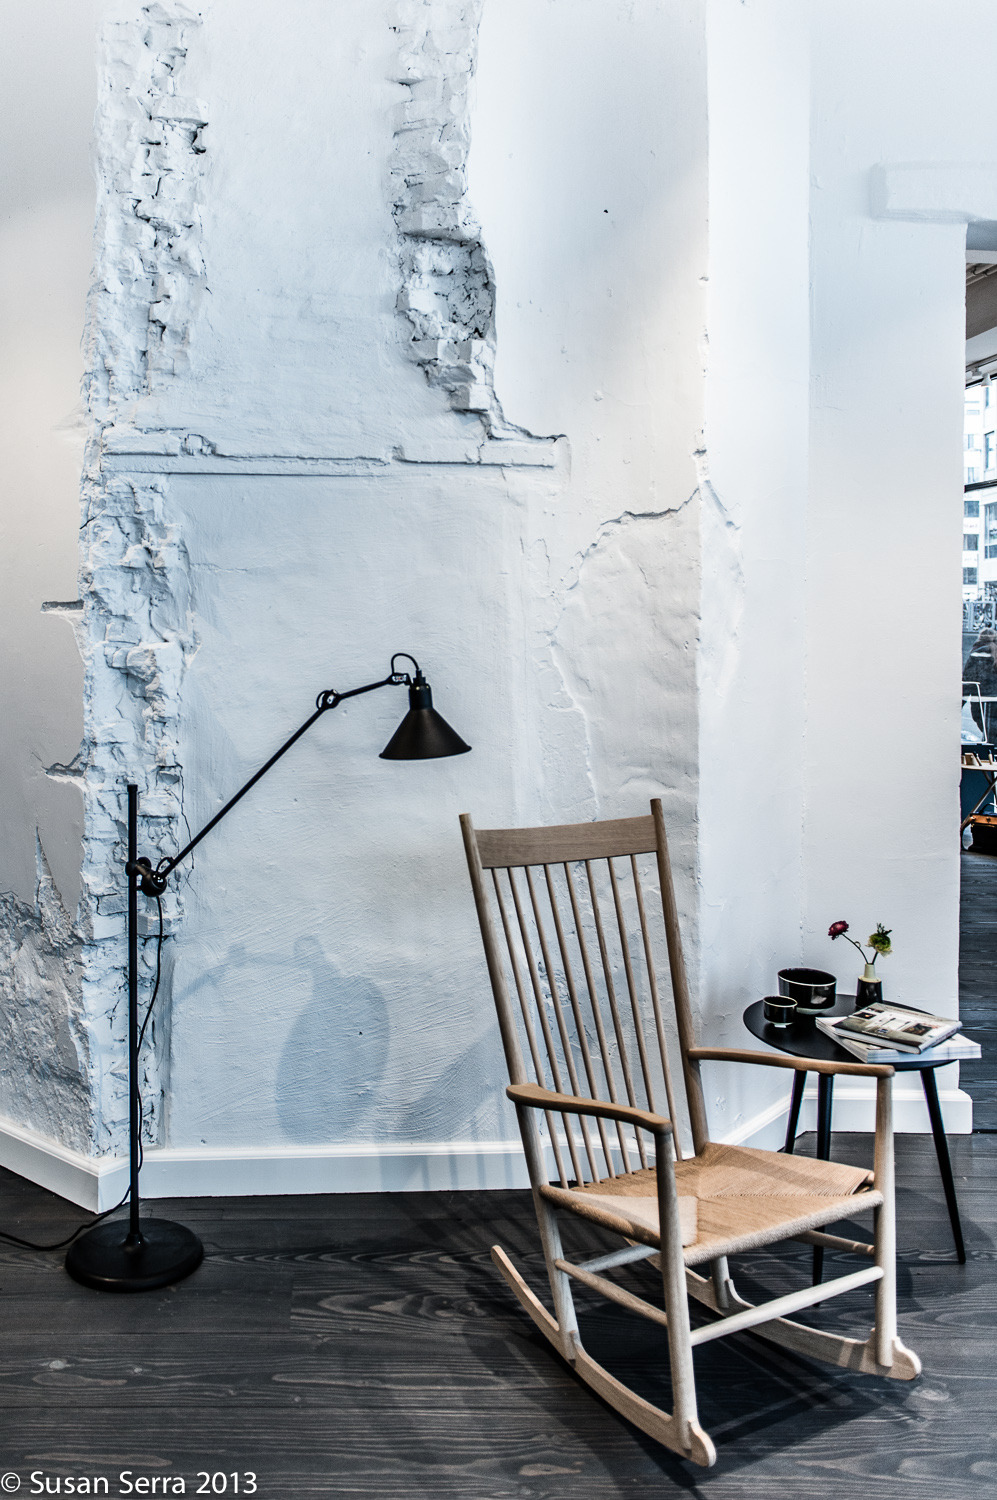 A vignette of the new Fredericia furniture showroom in Copenhagen. A fresh take on classic furniture set against a centuries old wall. The dark gray wide floor boards was also a new take on Scandinavian flooring, most often having a natural finish.